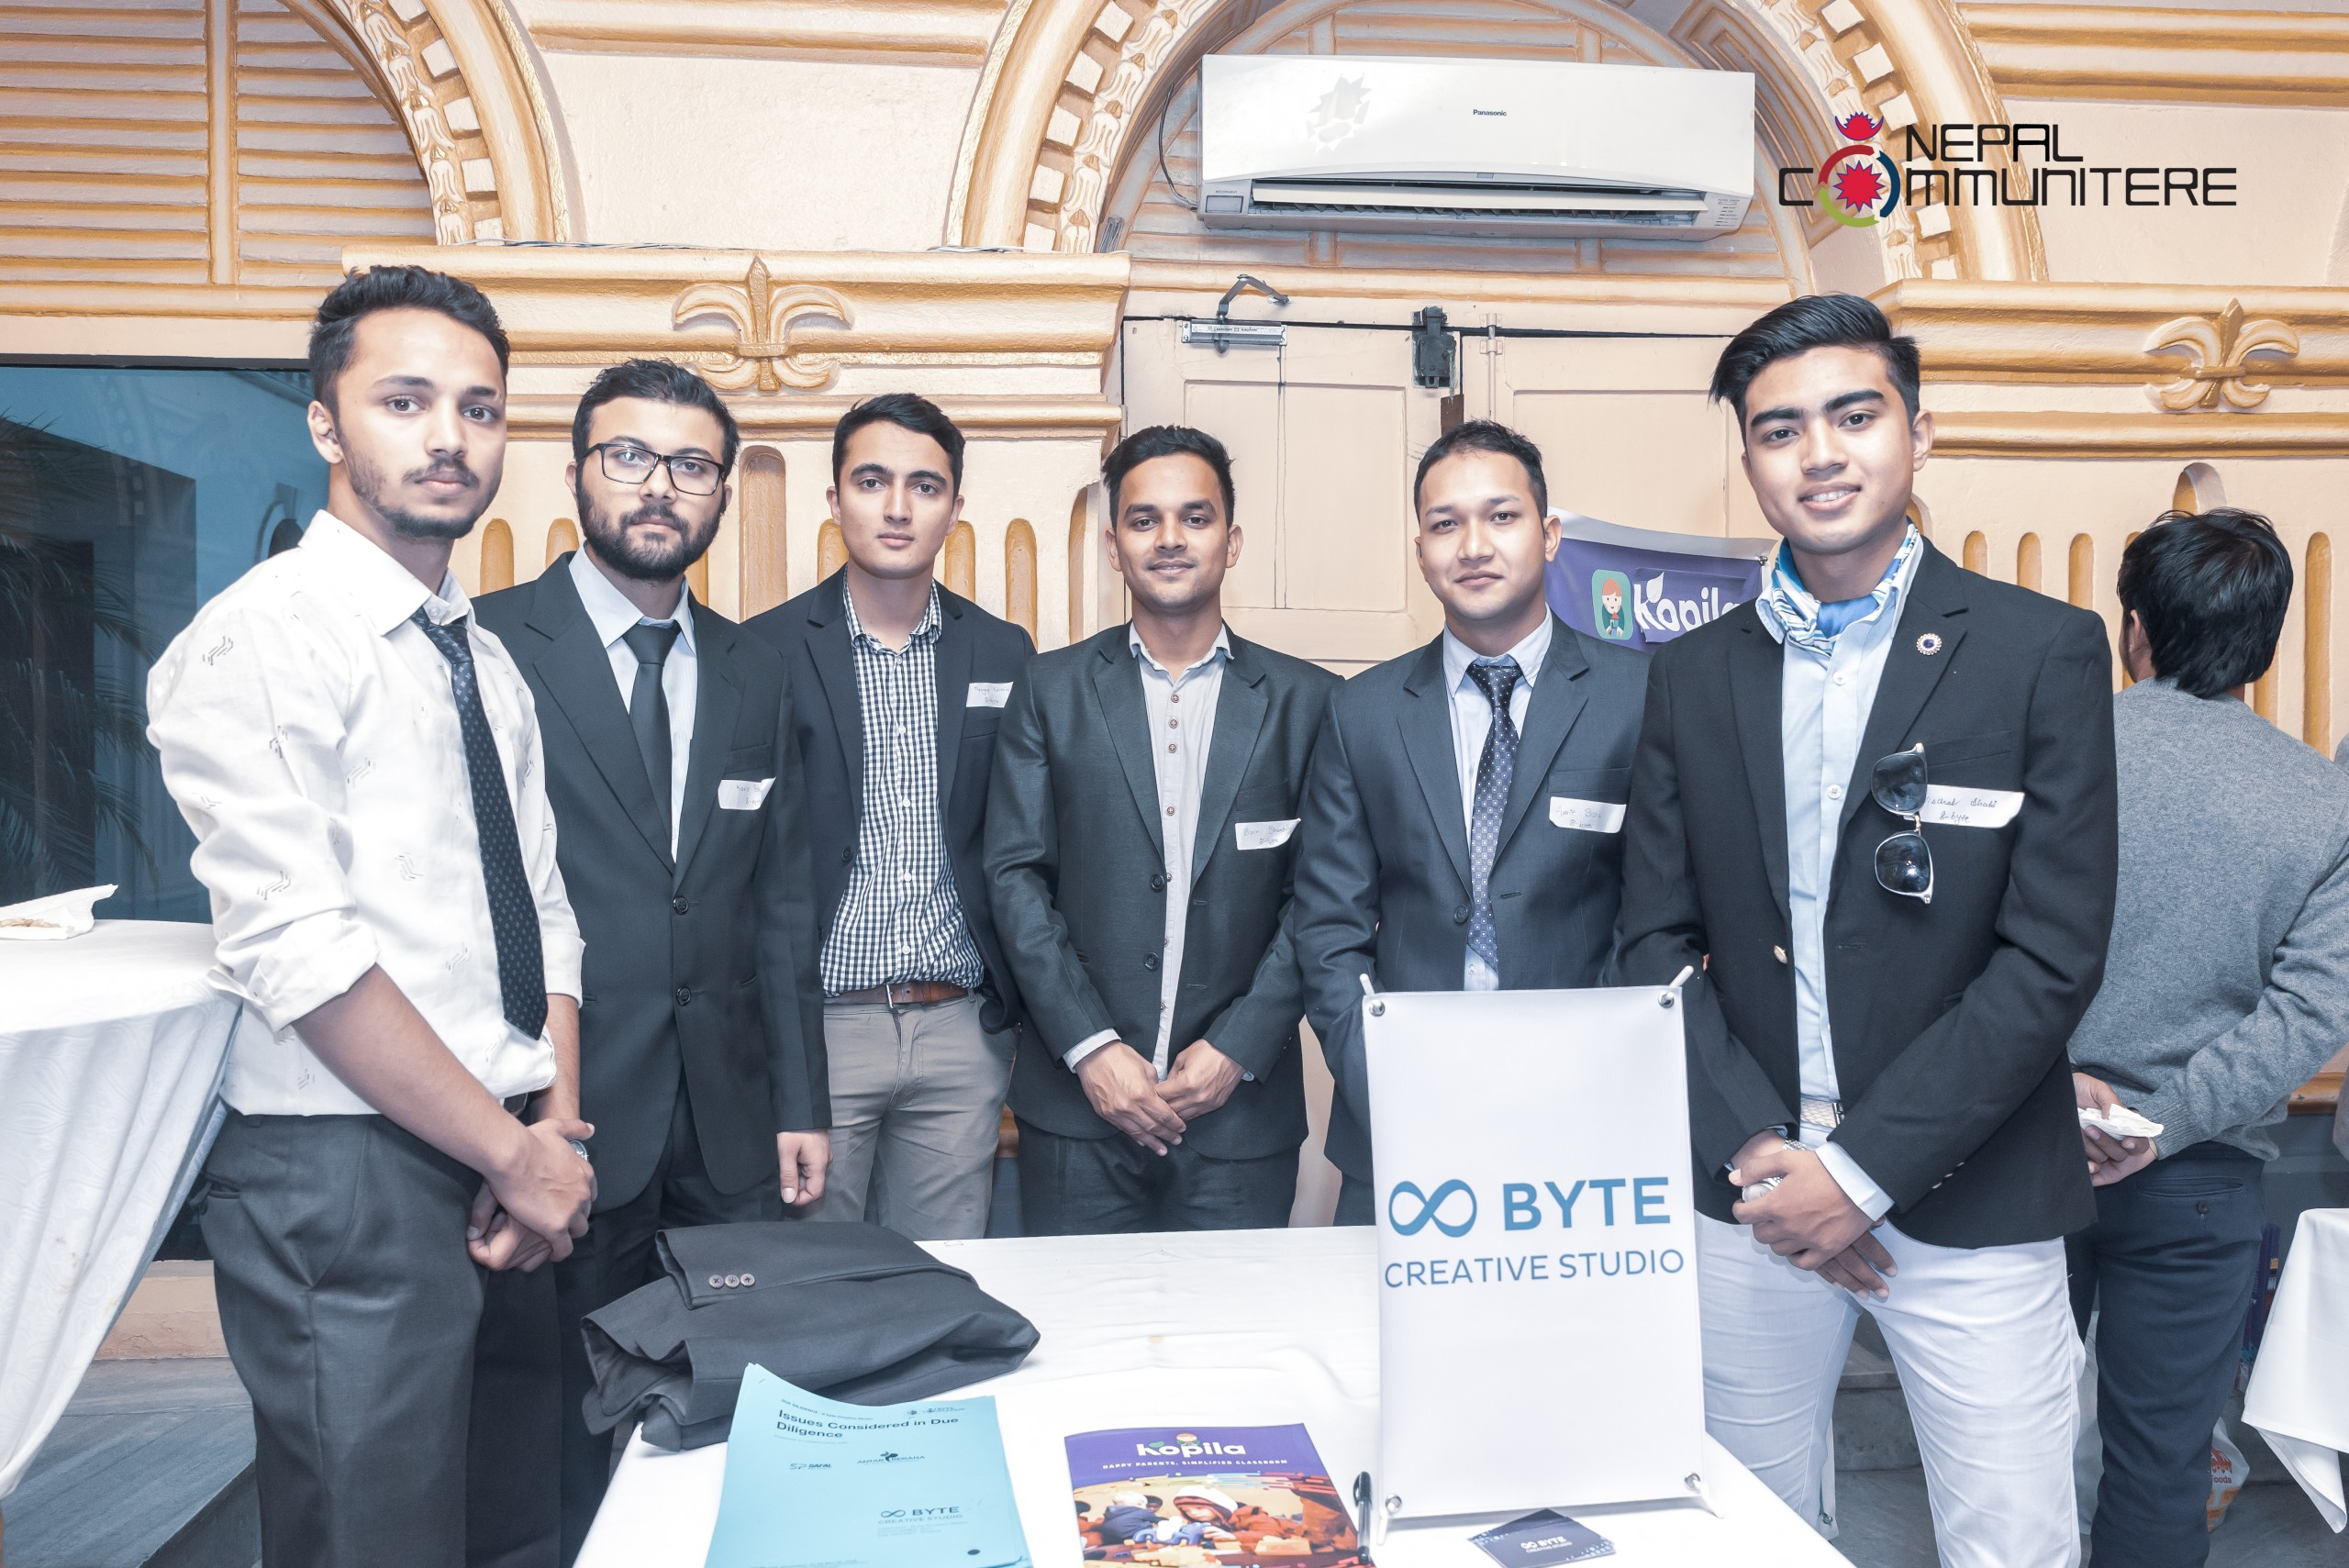 COVID Case Studies: 8Byte Continues to Strengthen Remote Education